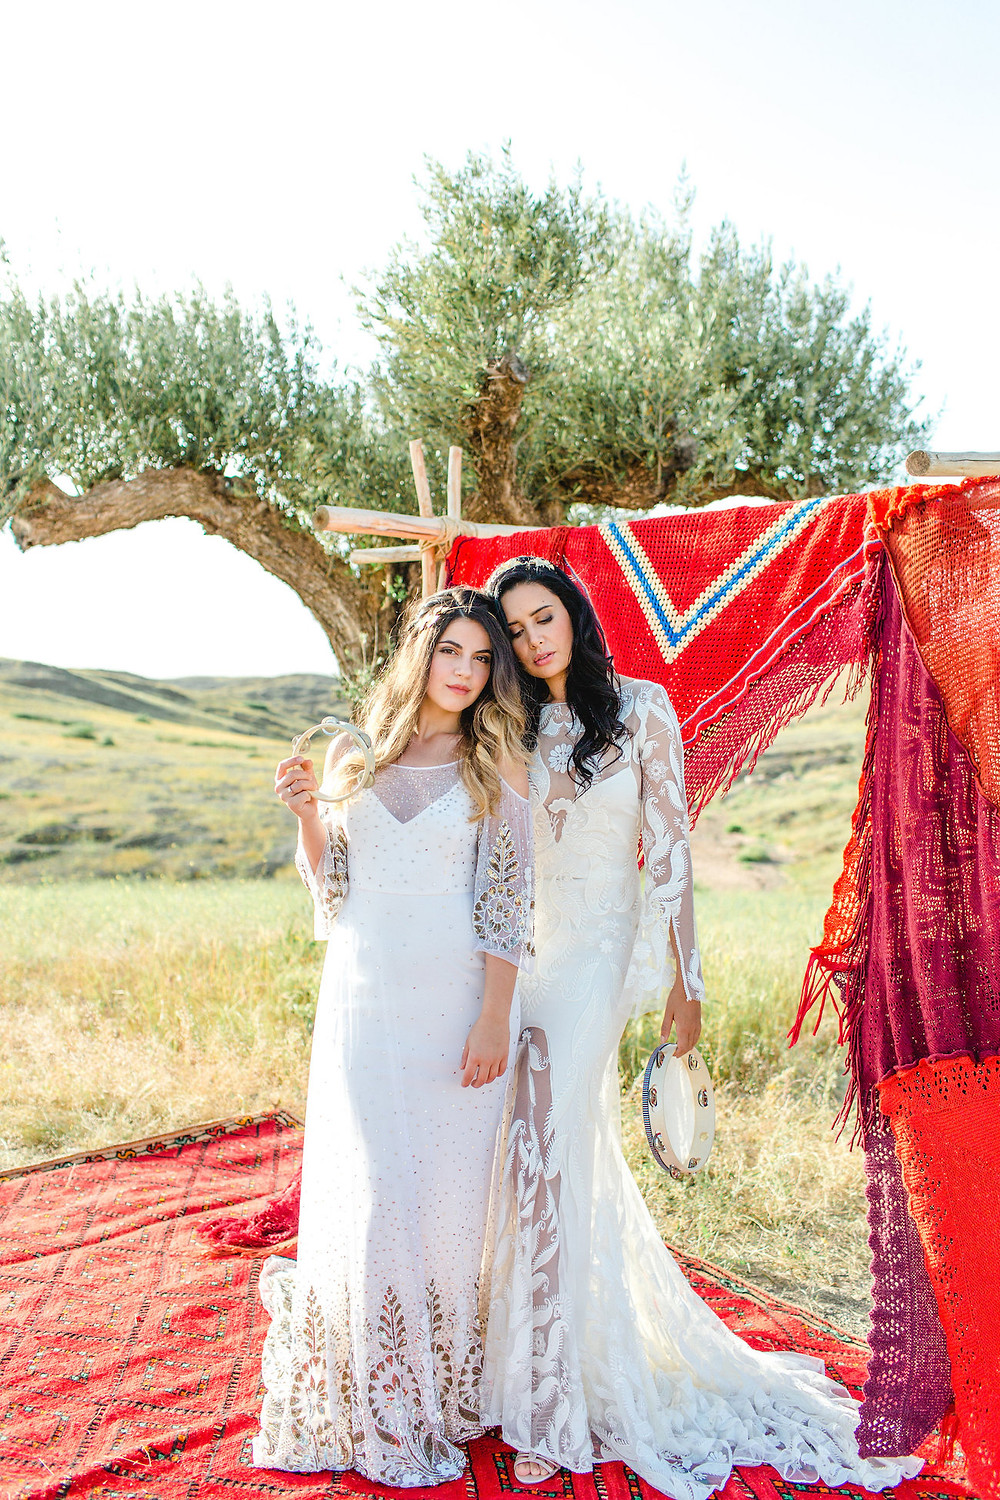 marrakech wedding , boho brides , boho wedding , bridal styling , Brautfrisur , Brautstyling in berlin , bridal styling in Marrakesh , braut